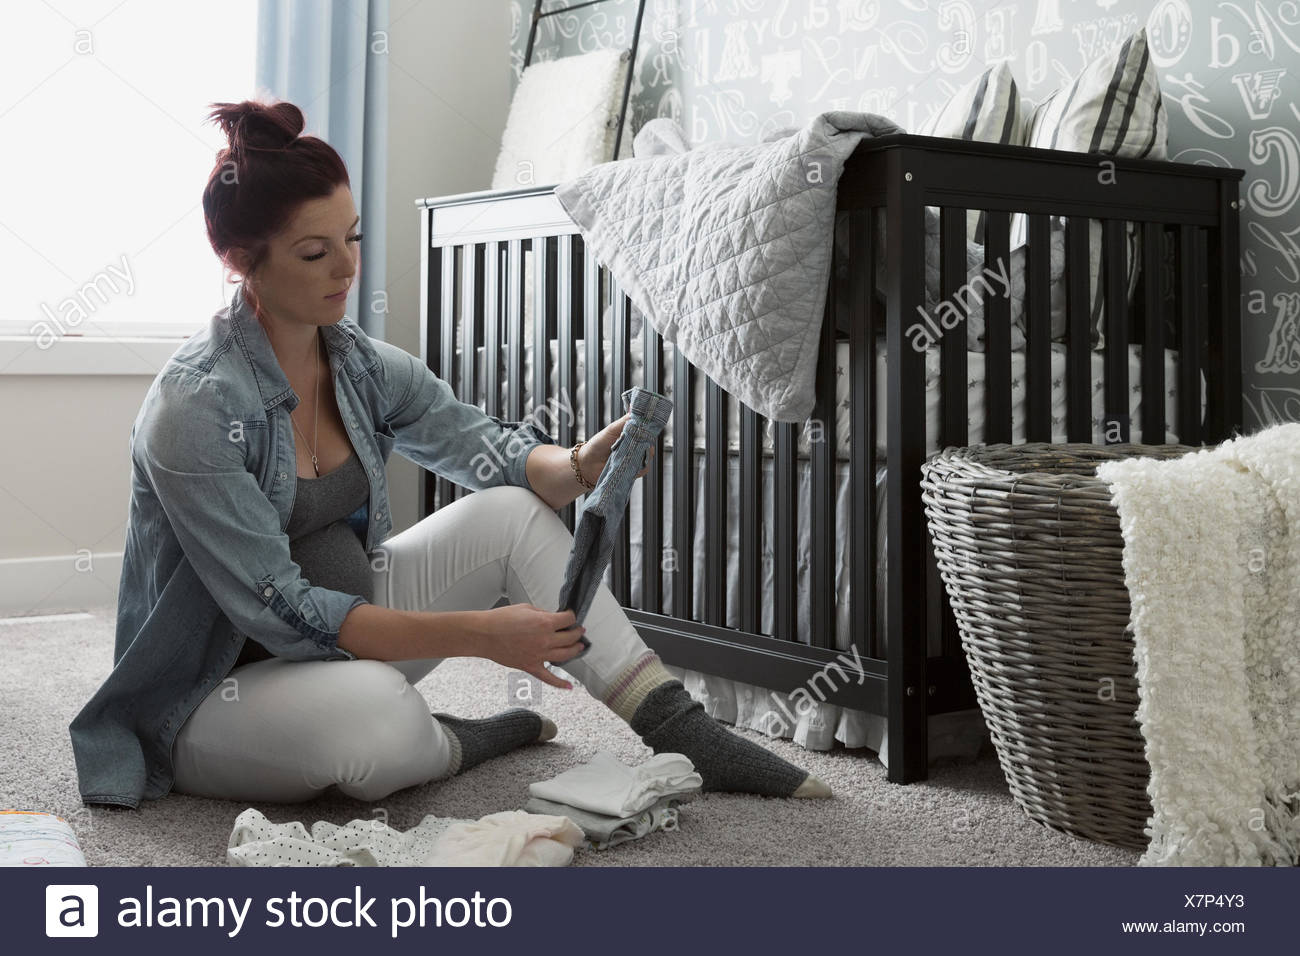 Pregnant woman looking at baby clothes in nursery - Stock Image